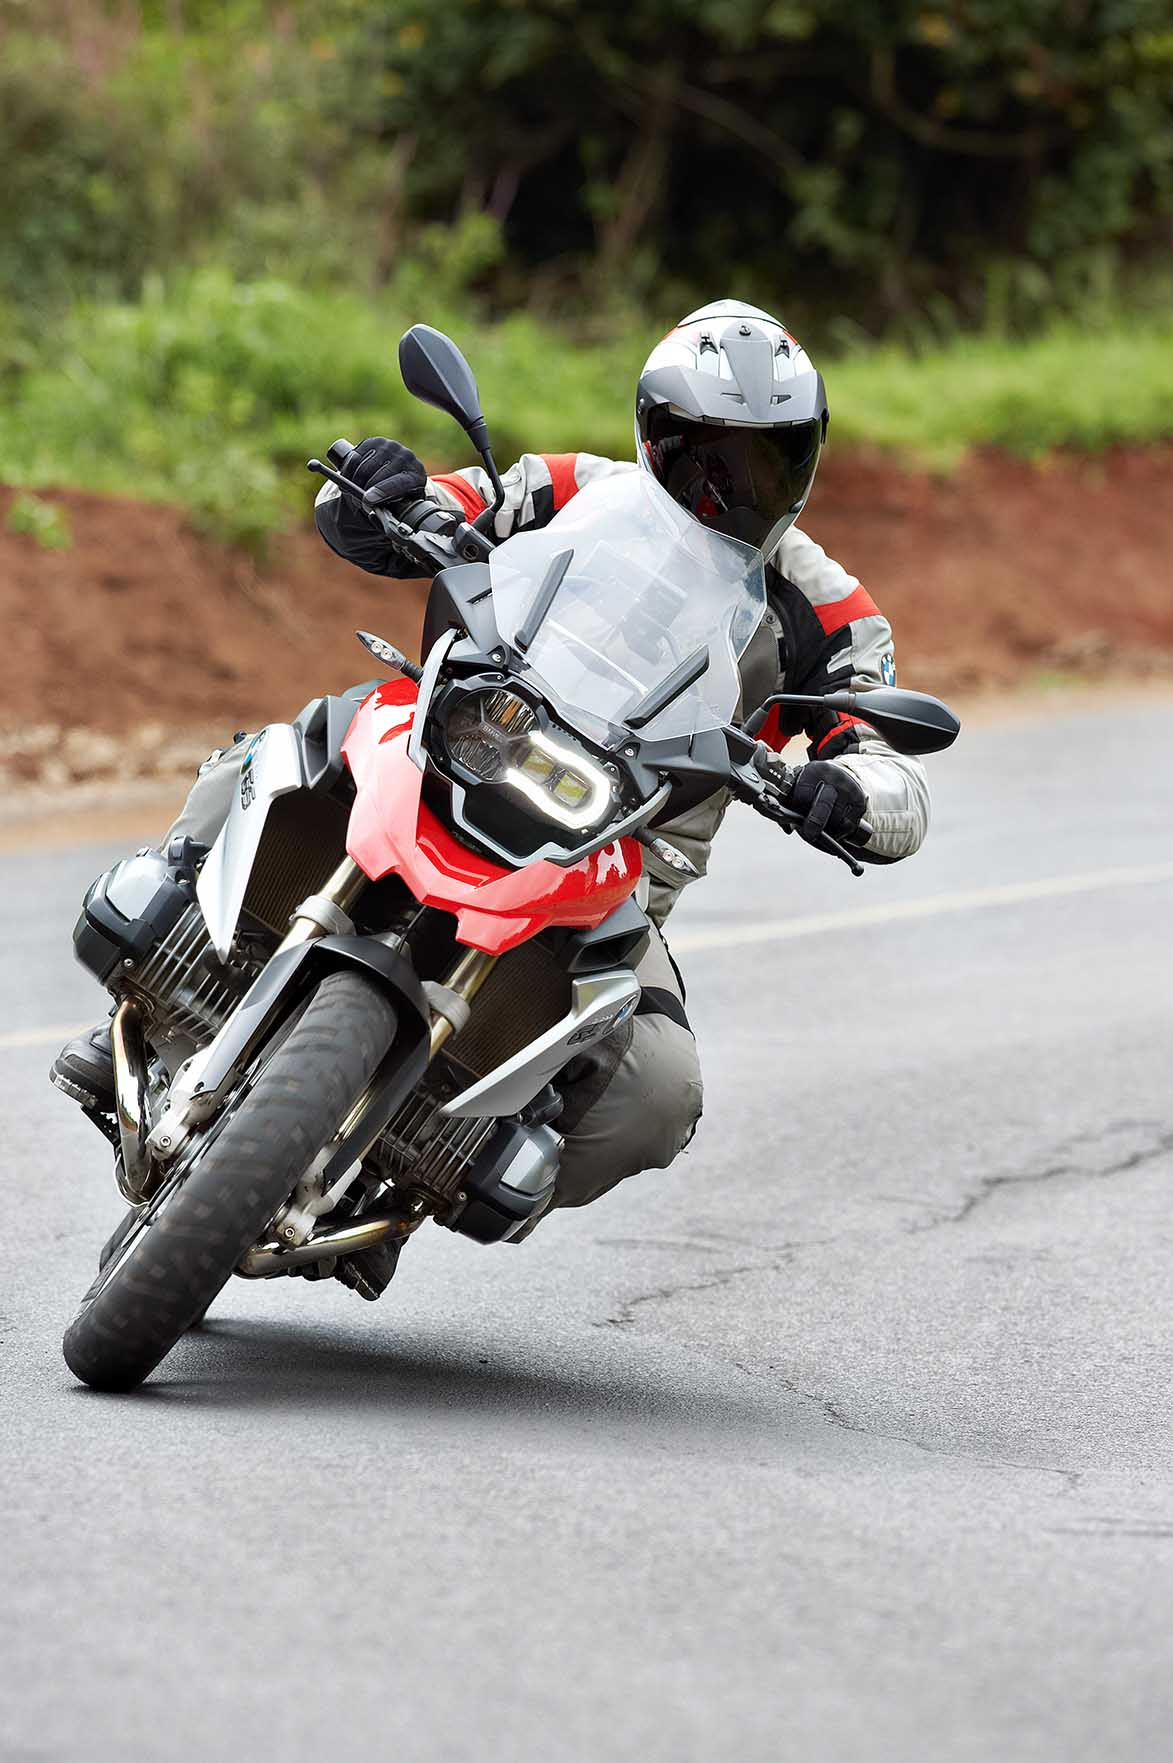 Bmw R1200gs Adventure Triple Black 2017 Review: The All New LIQUID COOLED R1200GS Threadfest